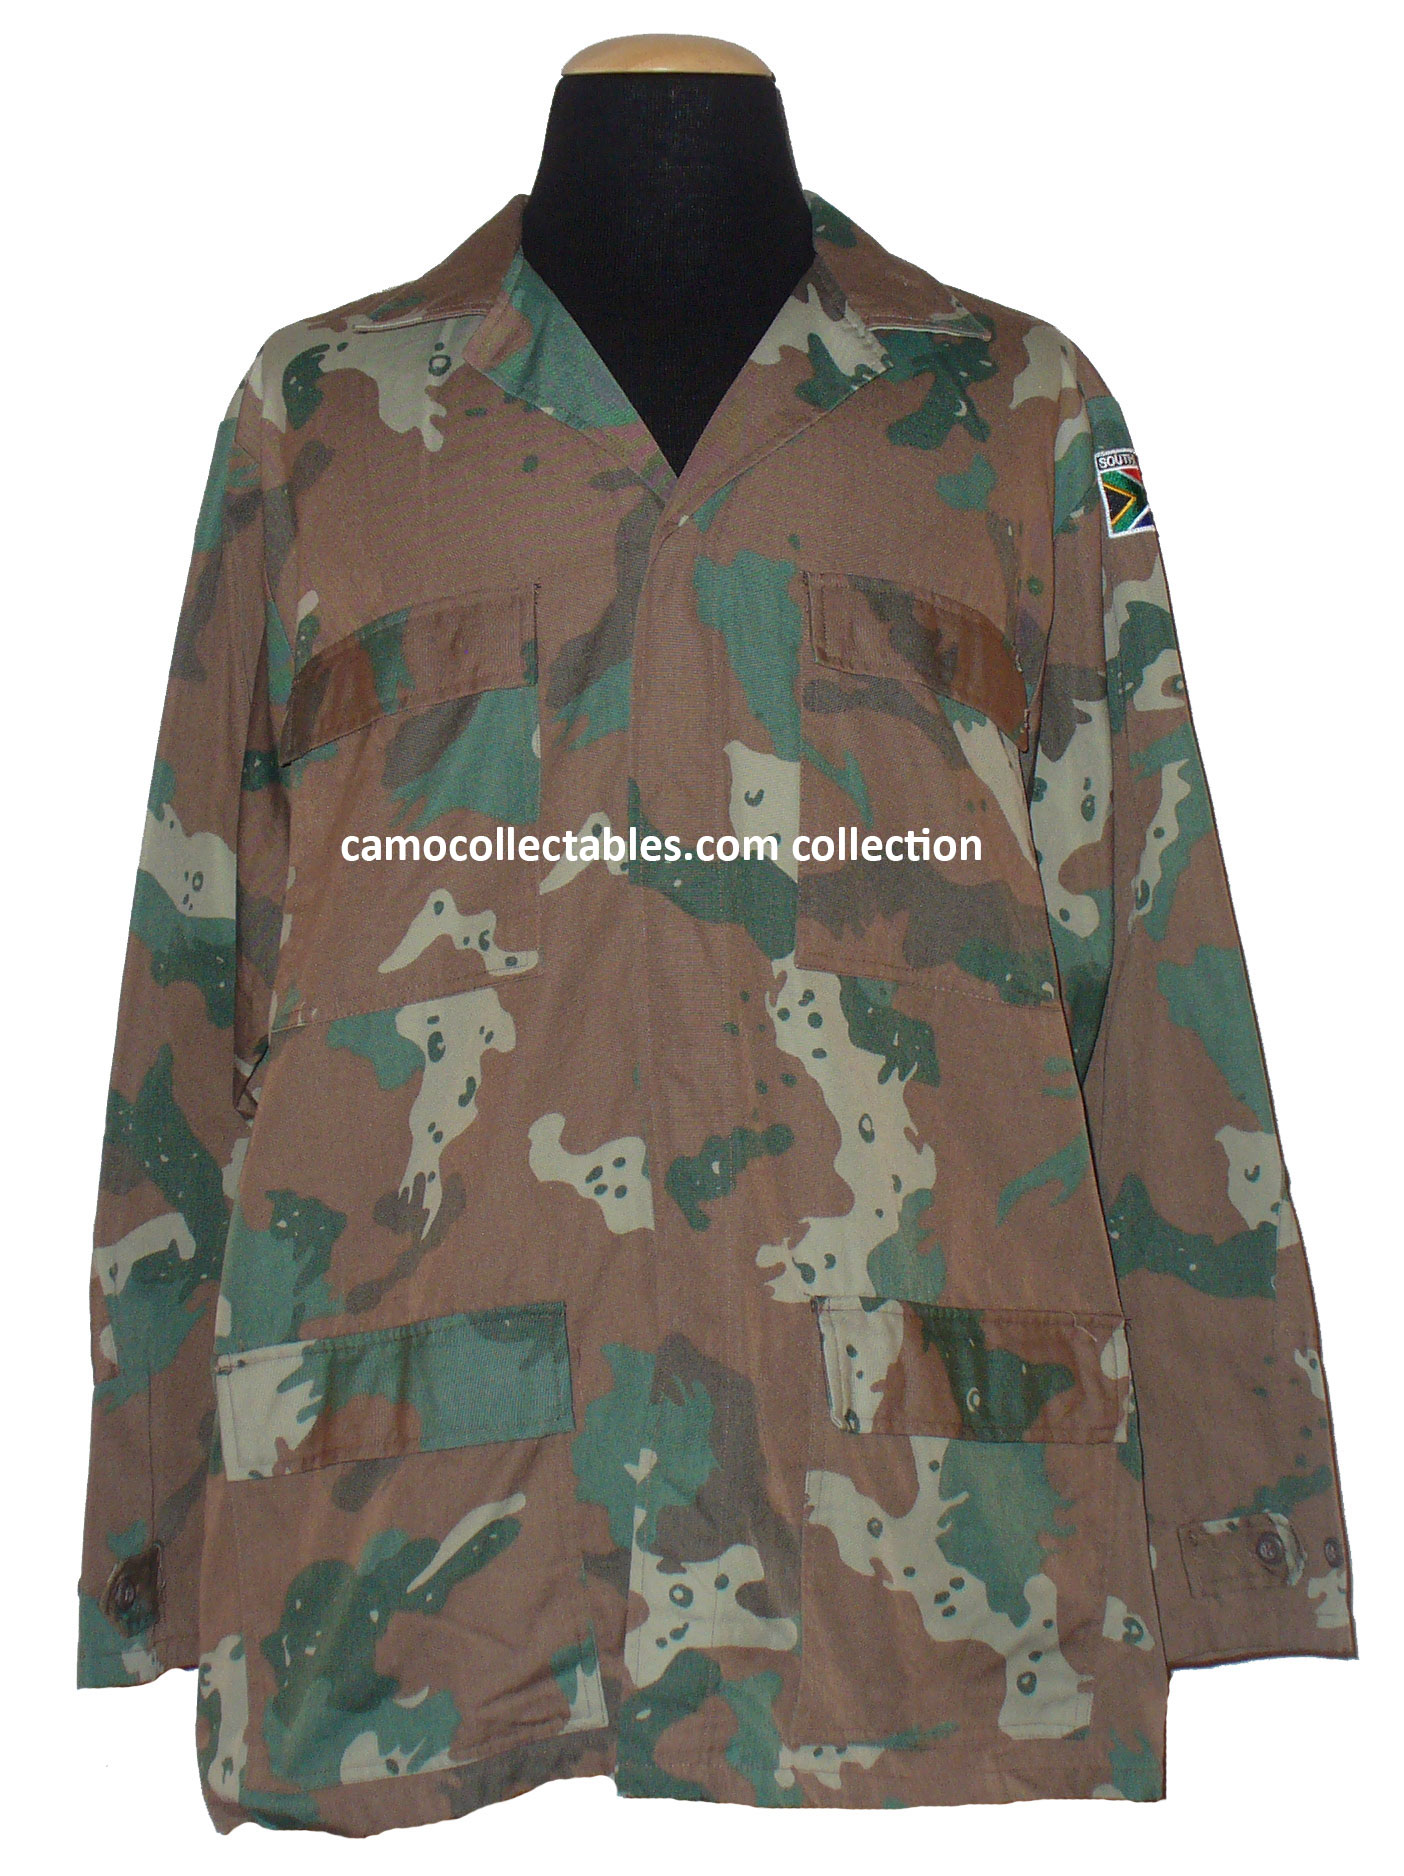 Camo Collectables S2000 Long Sleeve Shirt Type 2